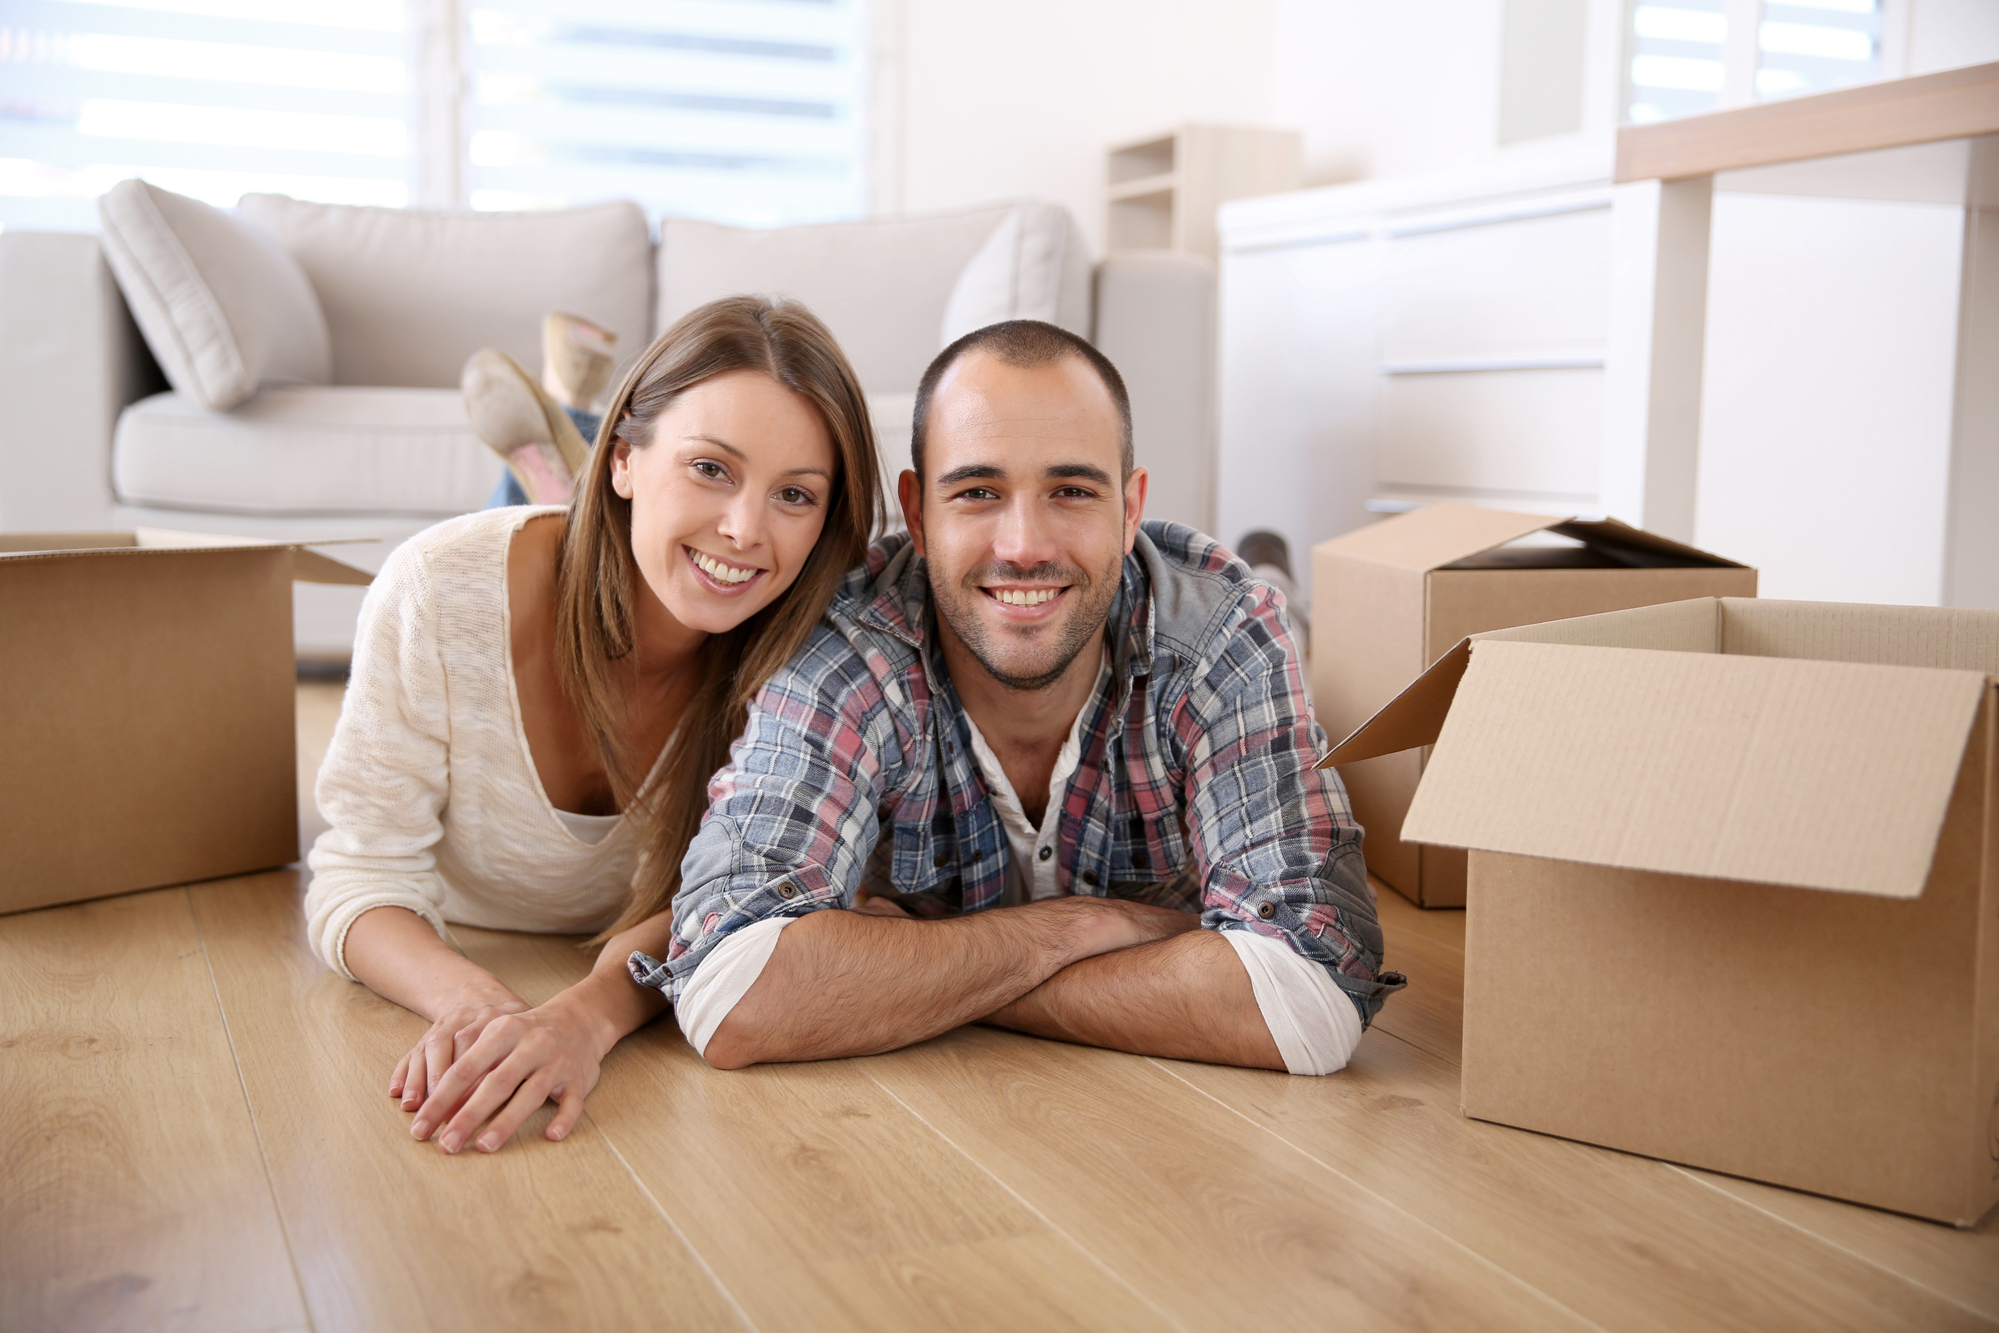 Smiling couple at home